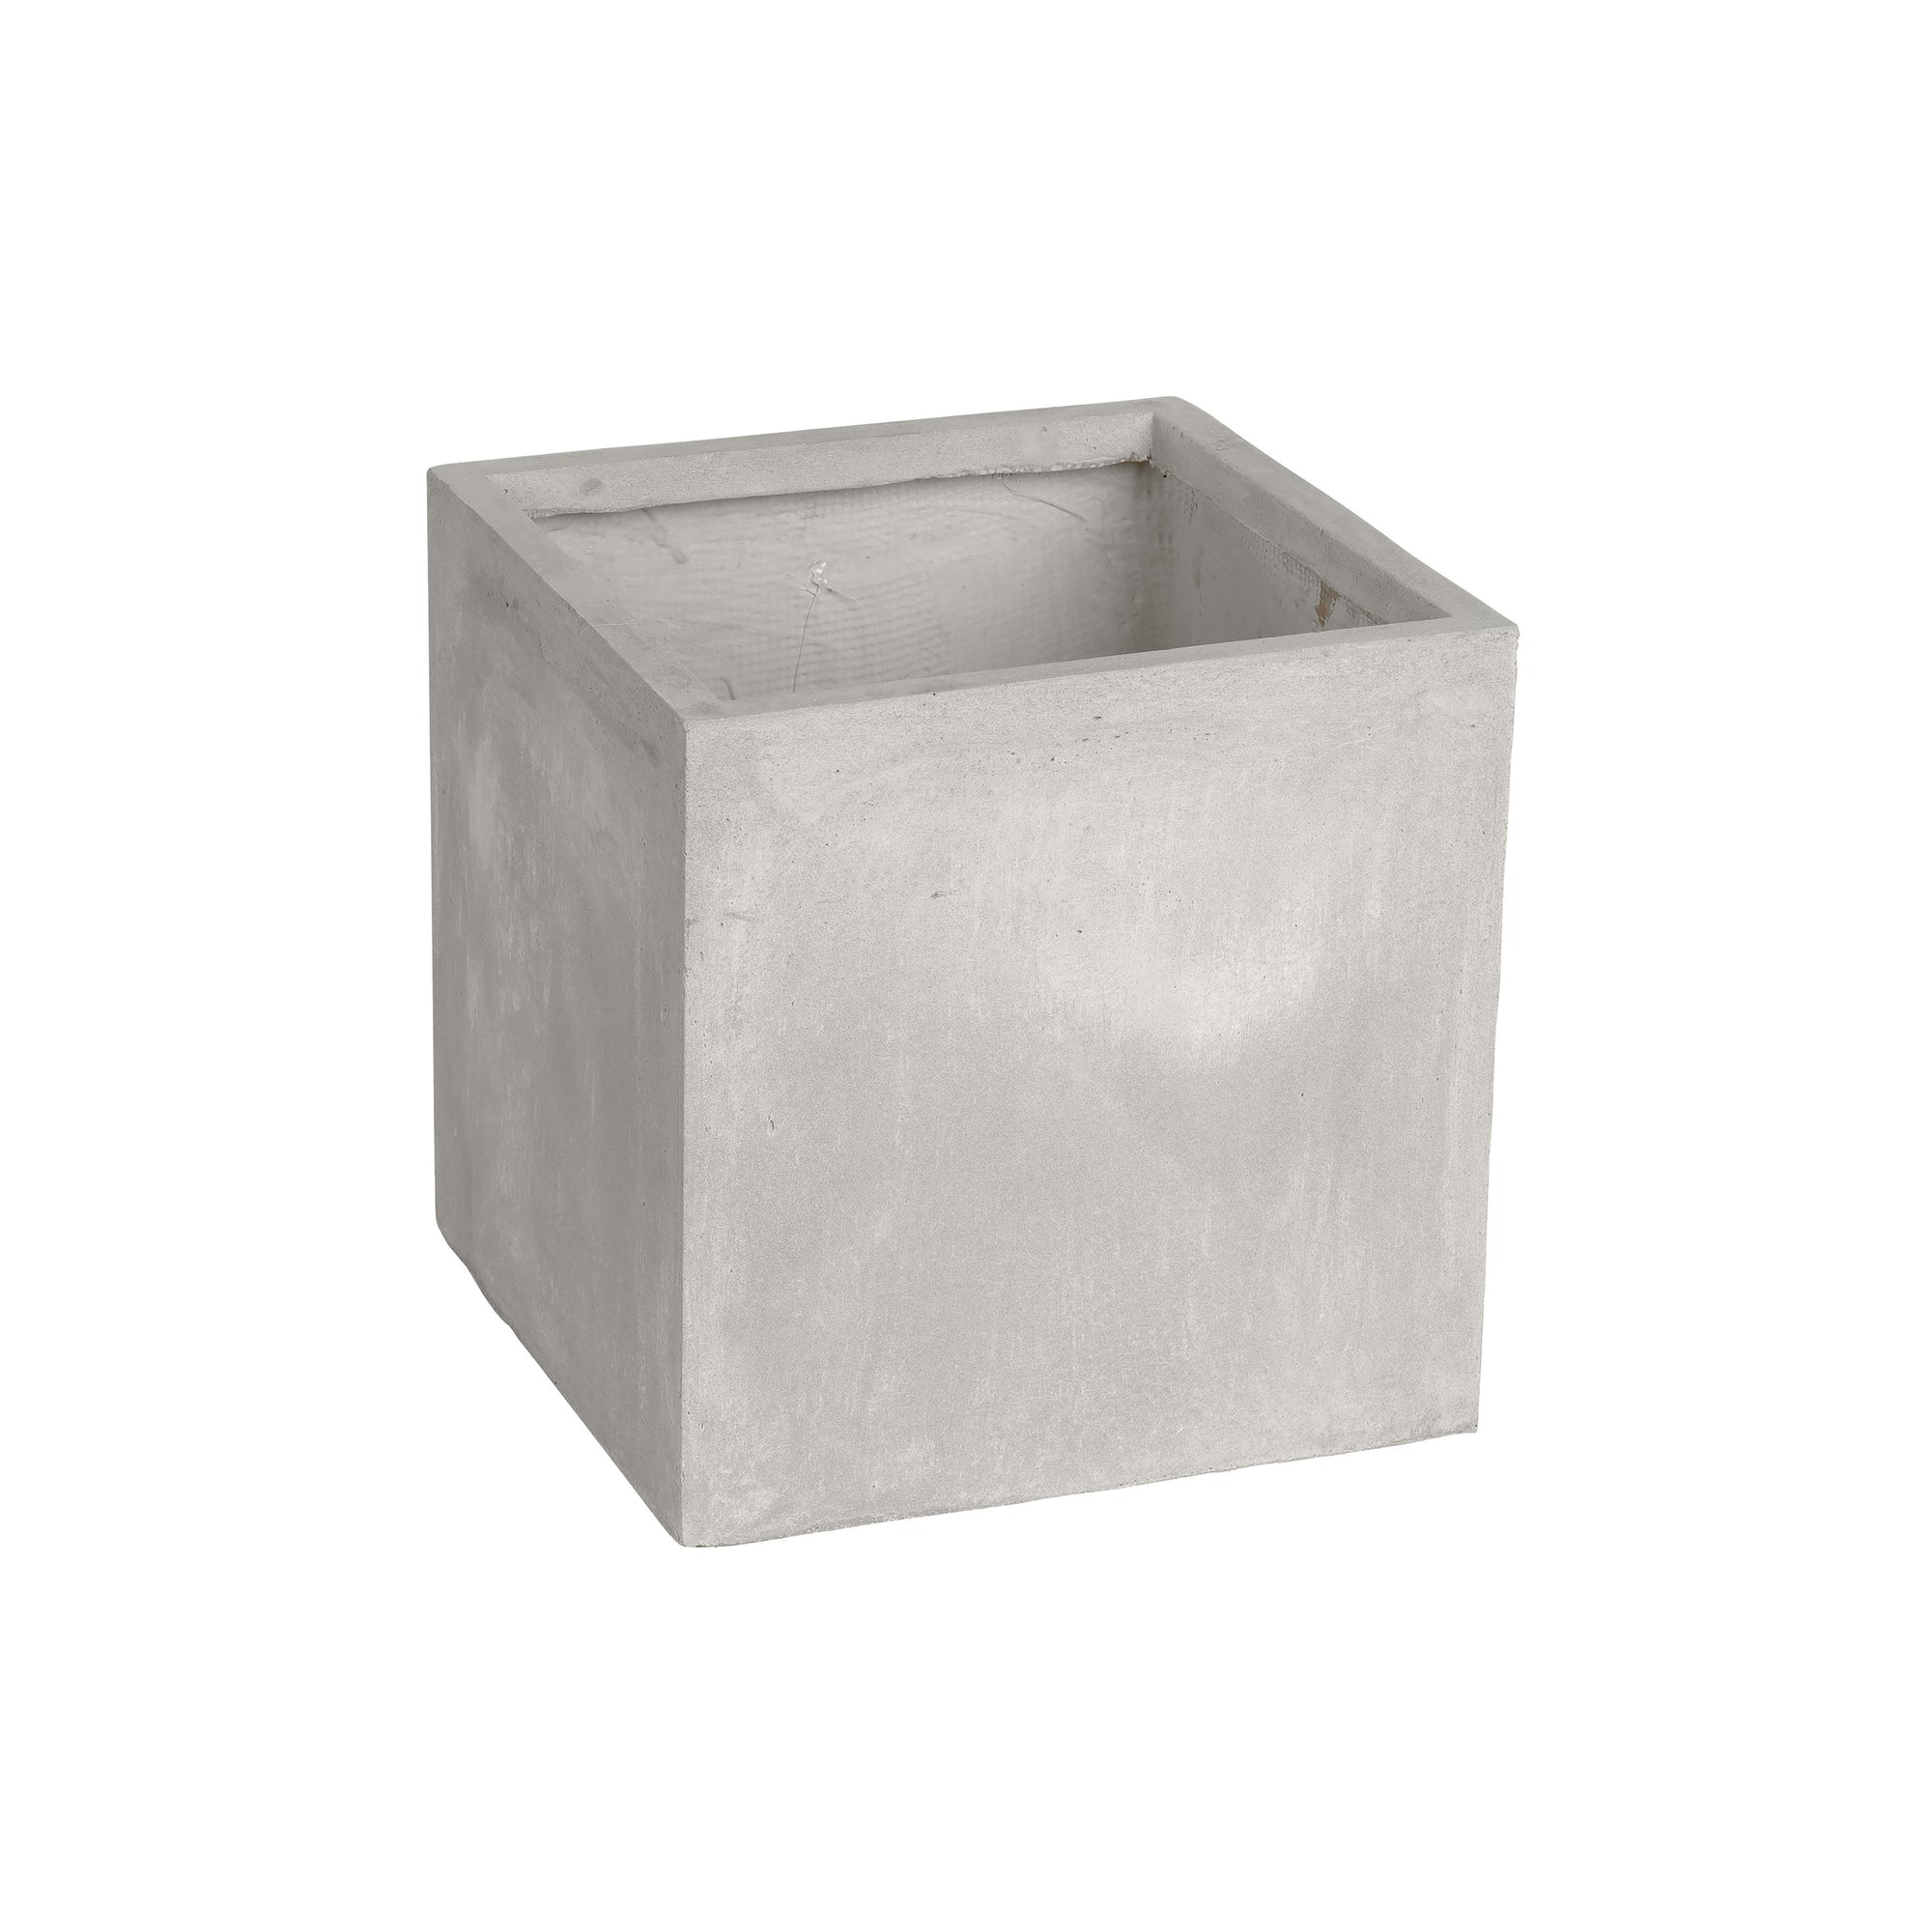 Handcrafted square stonecast planter in light grey